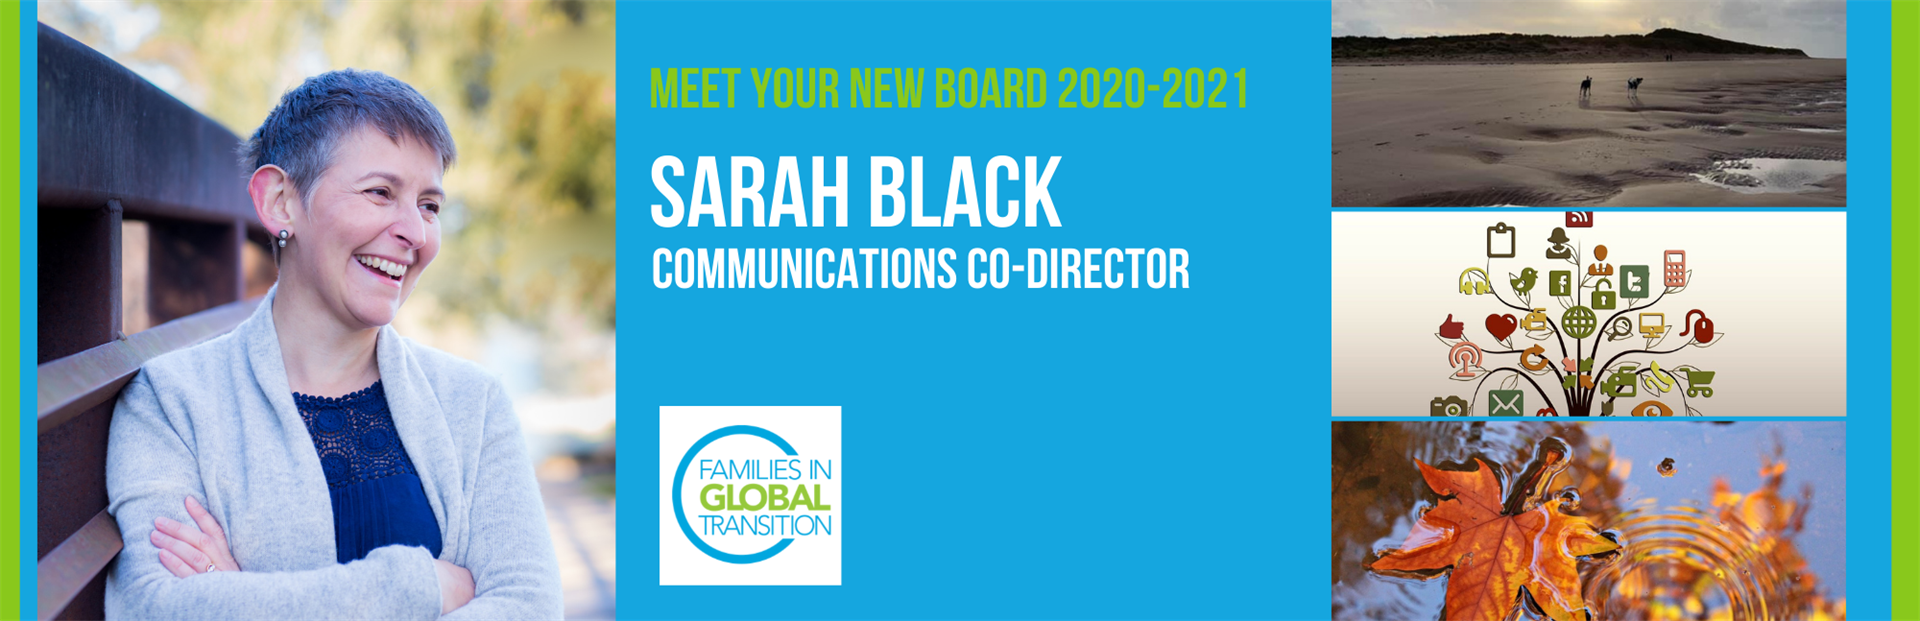 Blog title: Sarah Black is FIGT's new Communications Co-Director